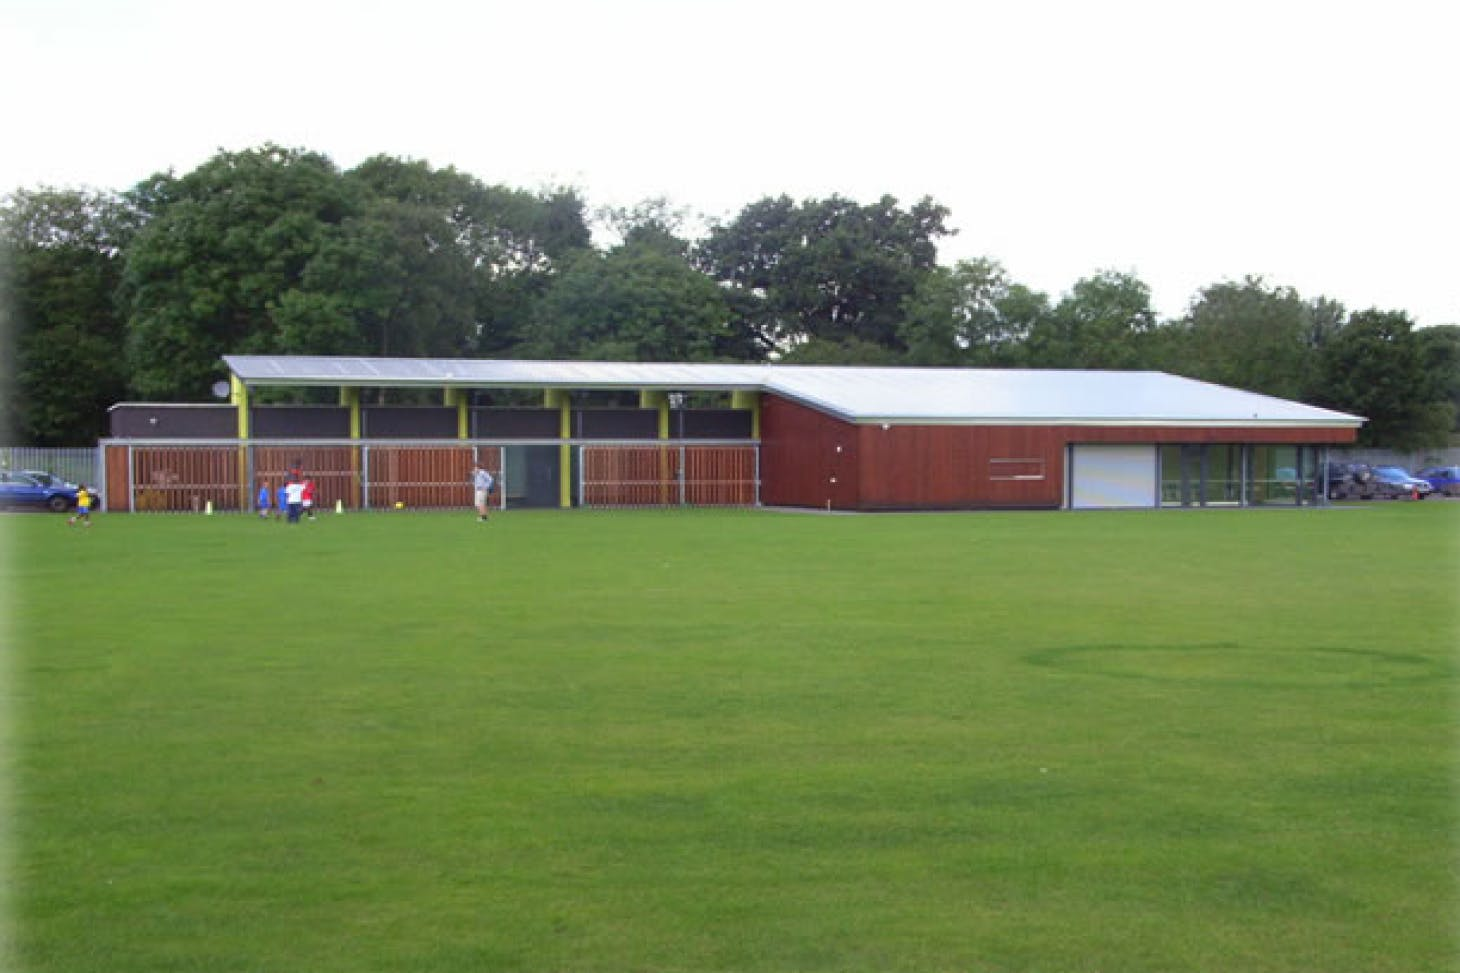 Ten Em Bee Sports Development Centre 11 a side | Grass football pitch